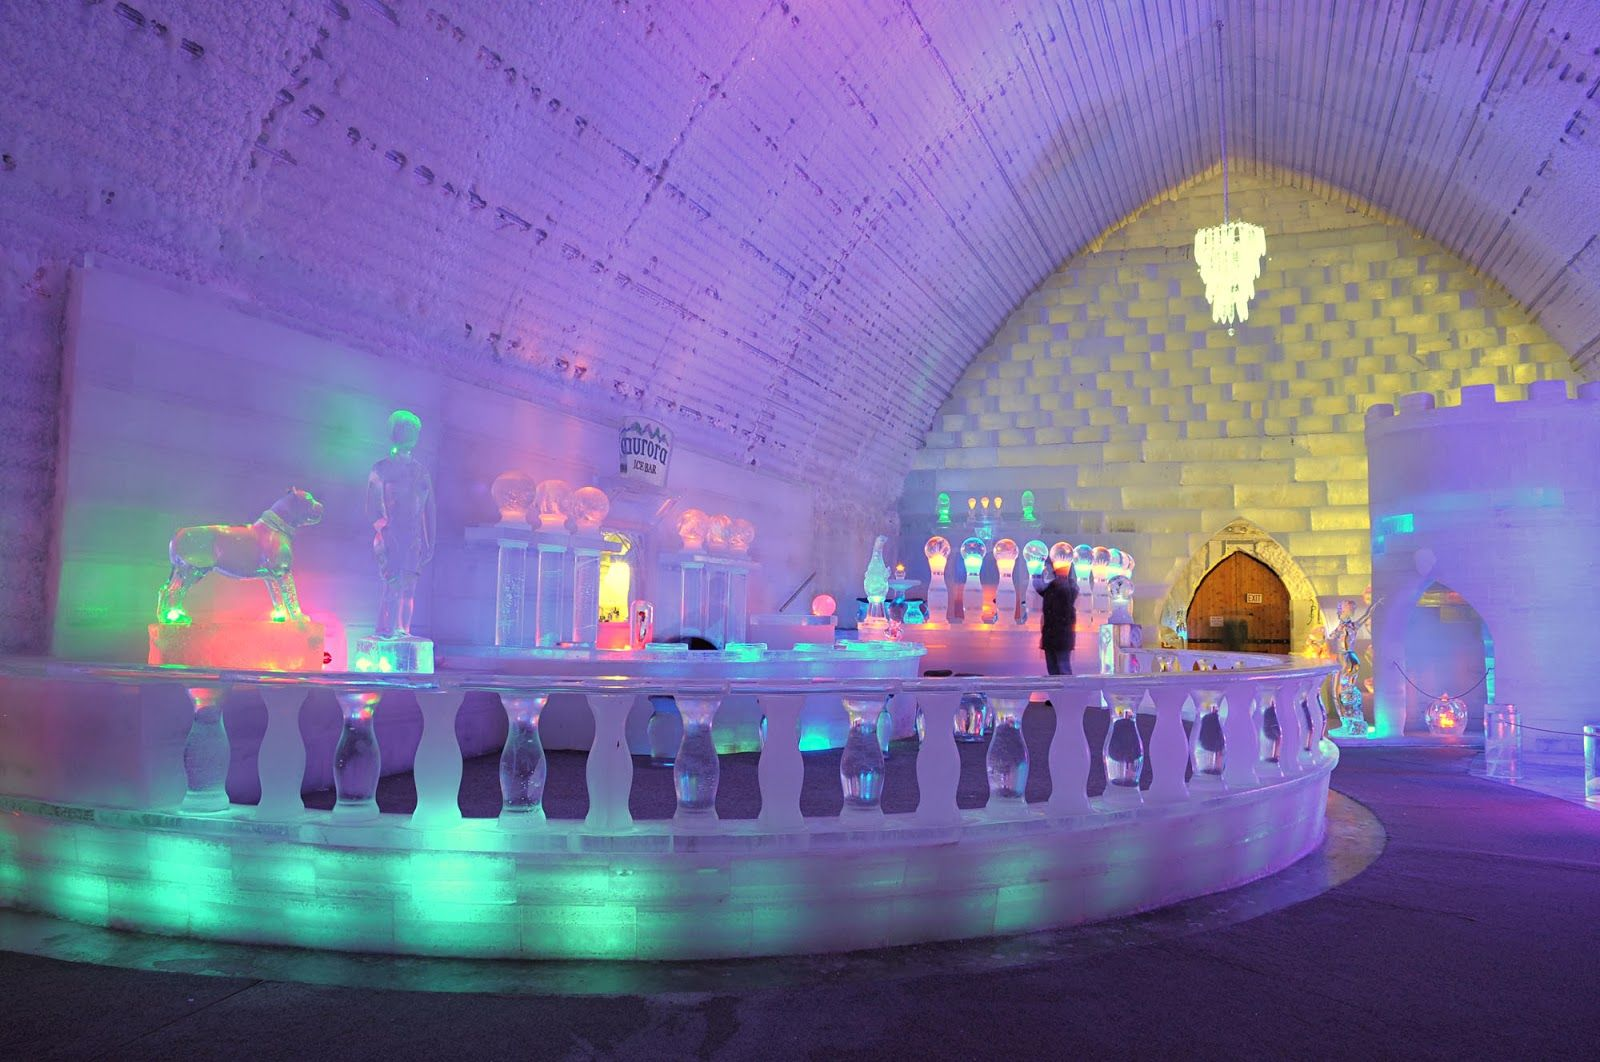 48 epic dream hotels to visit before you die ice hotel - Hotel de glace suede ...